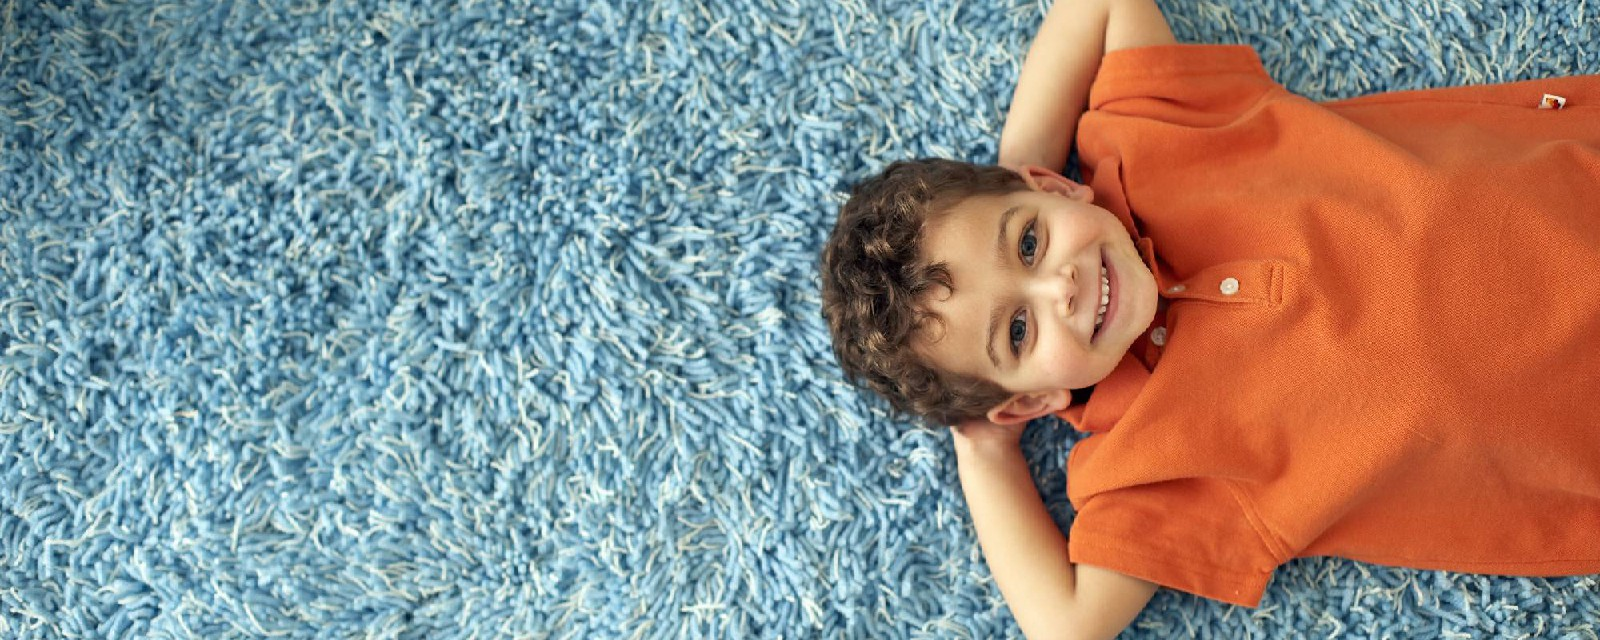 Rugs, Carpets, Deep Cleaning & Maintenance